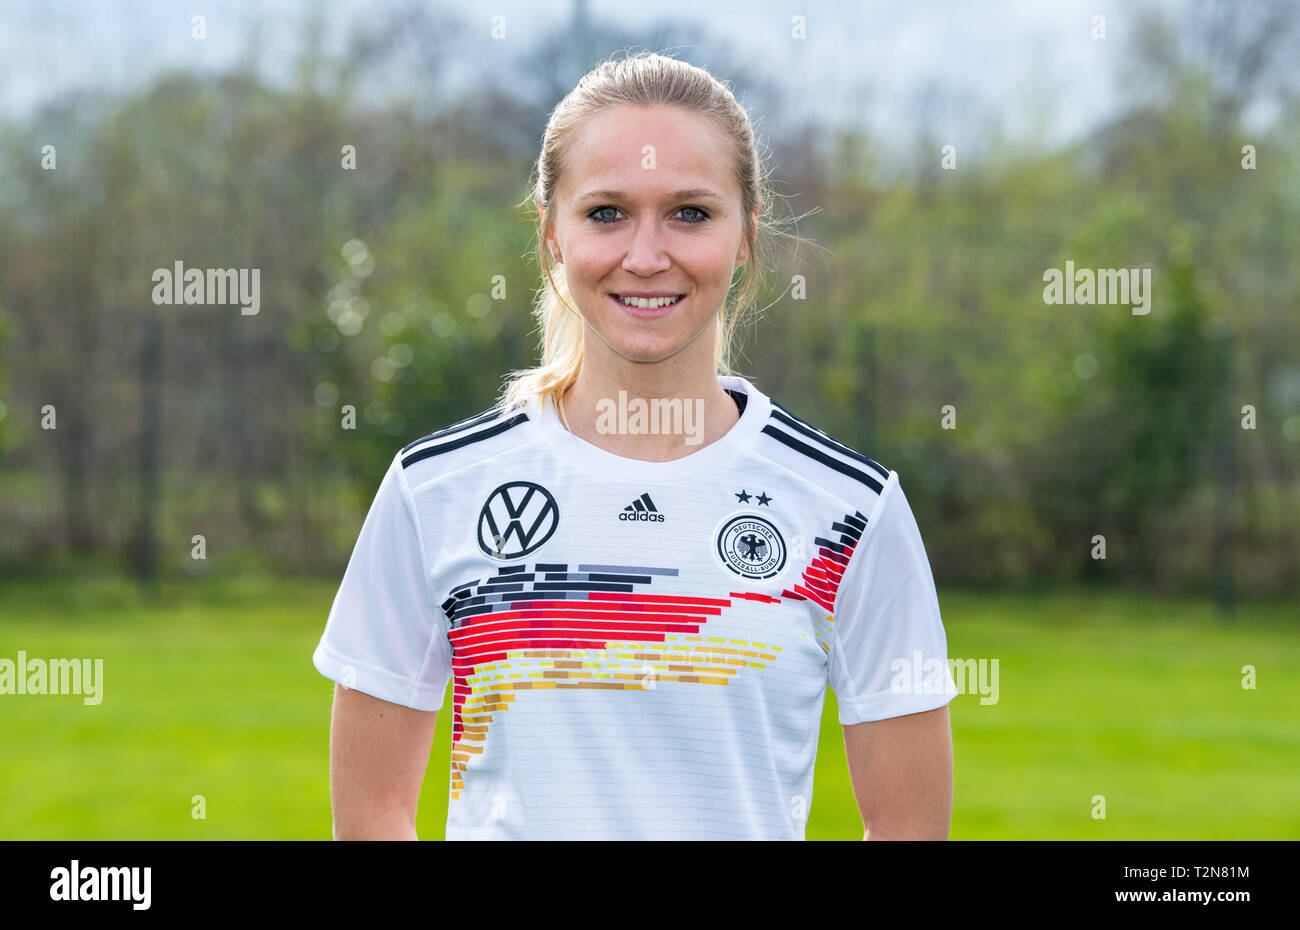 Harsewinkel, Germany. 03rd Apr, 2019. Photo shoot of the DFB women's national team with team and portrait photos at the Hotel Klosterpforte. Germany's Turid Knaak. Credit: Guido Kirchner/dpa/Alamy Live News - Stock Image